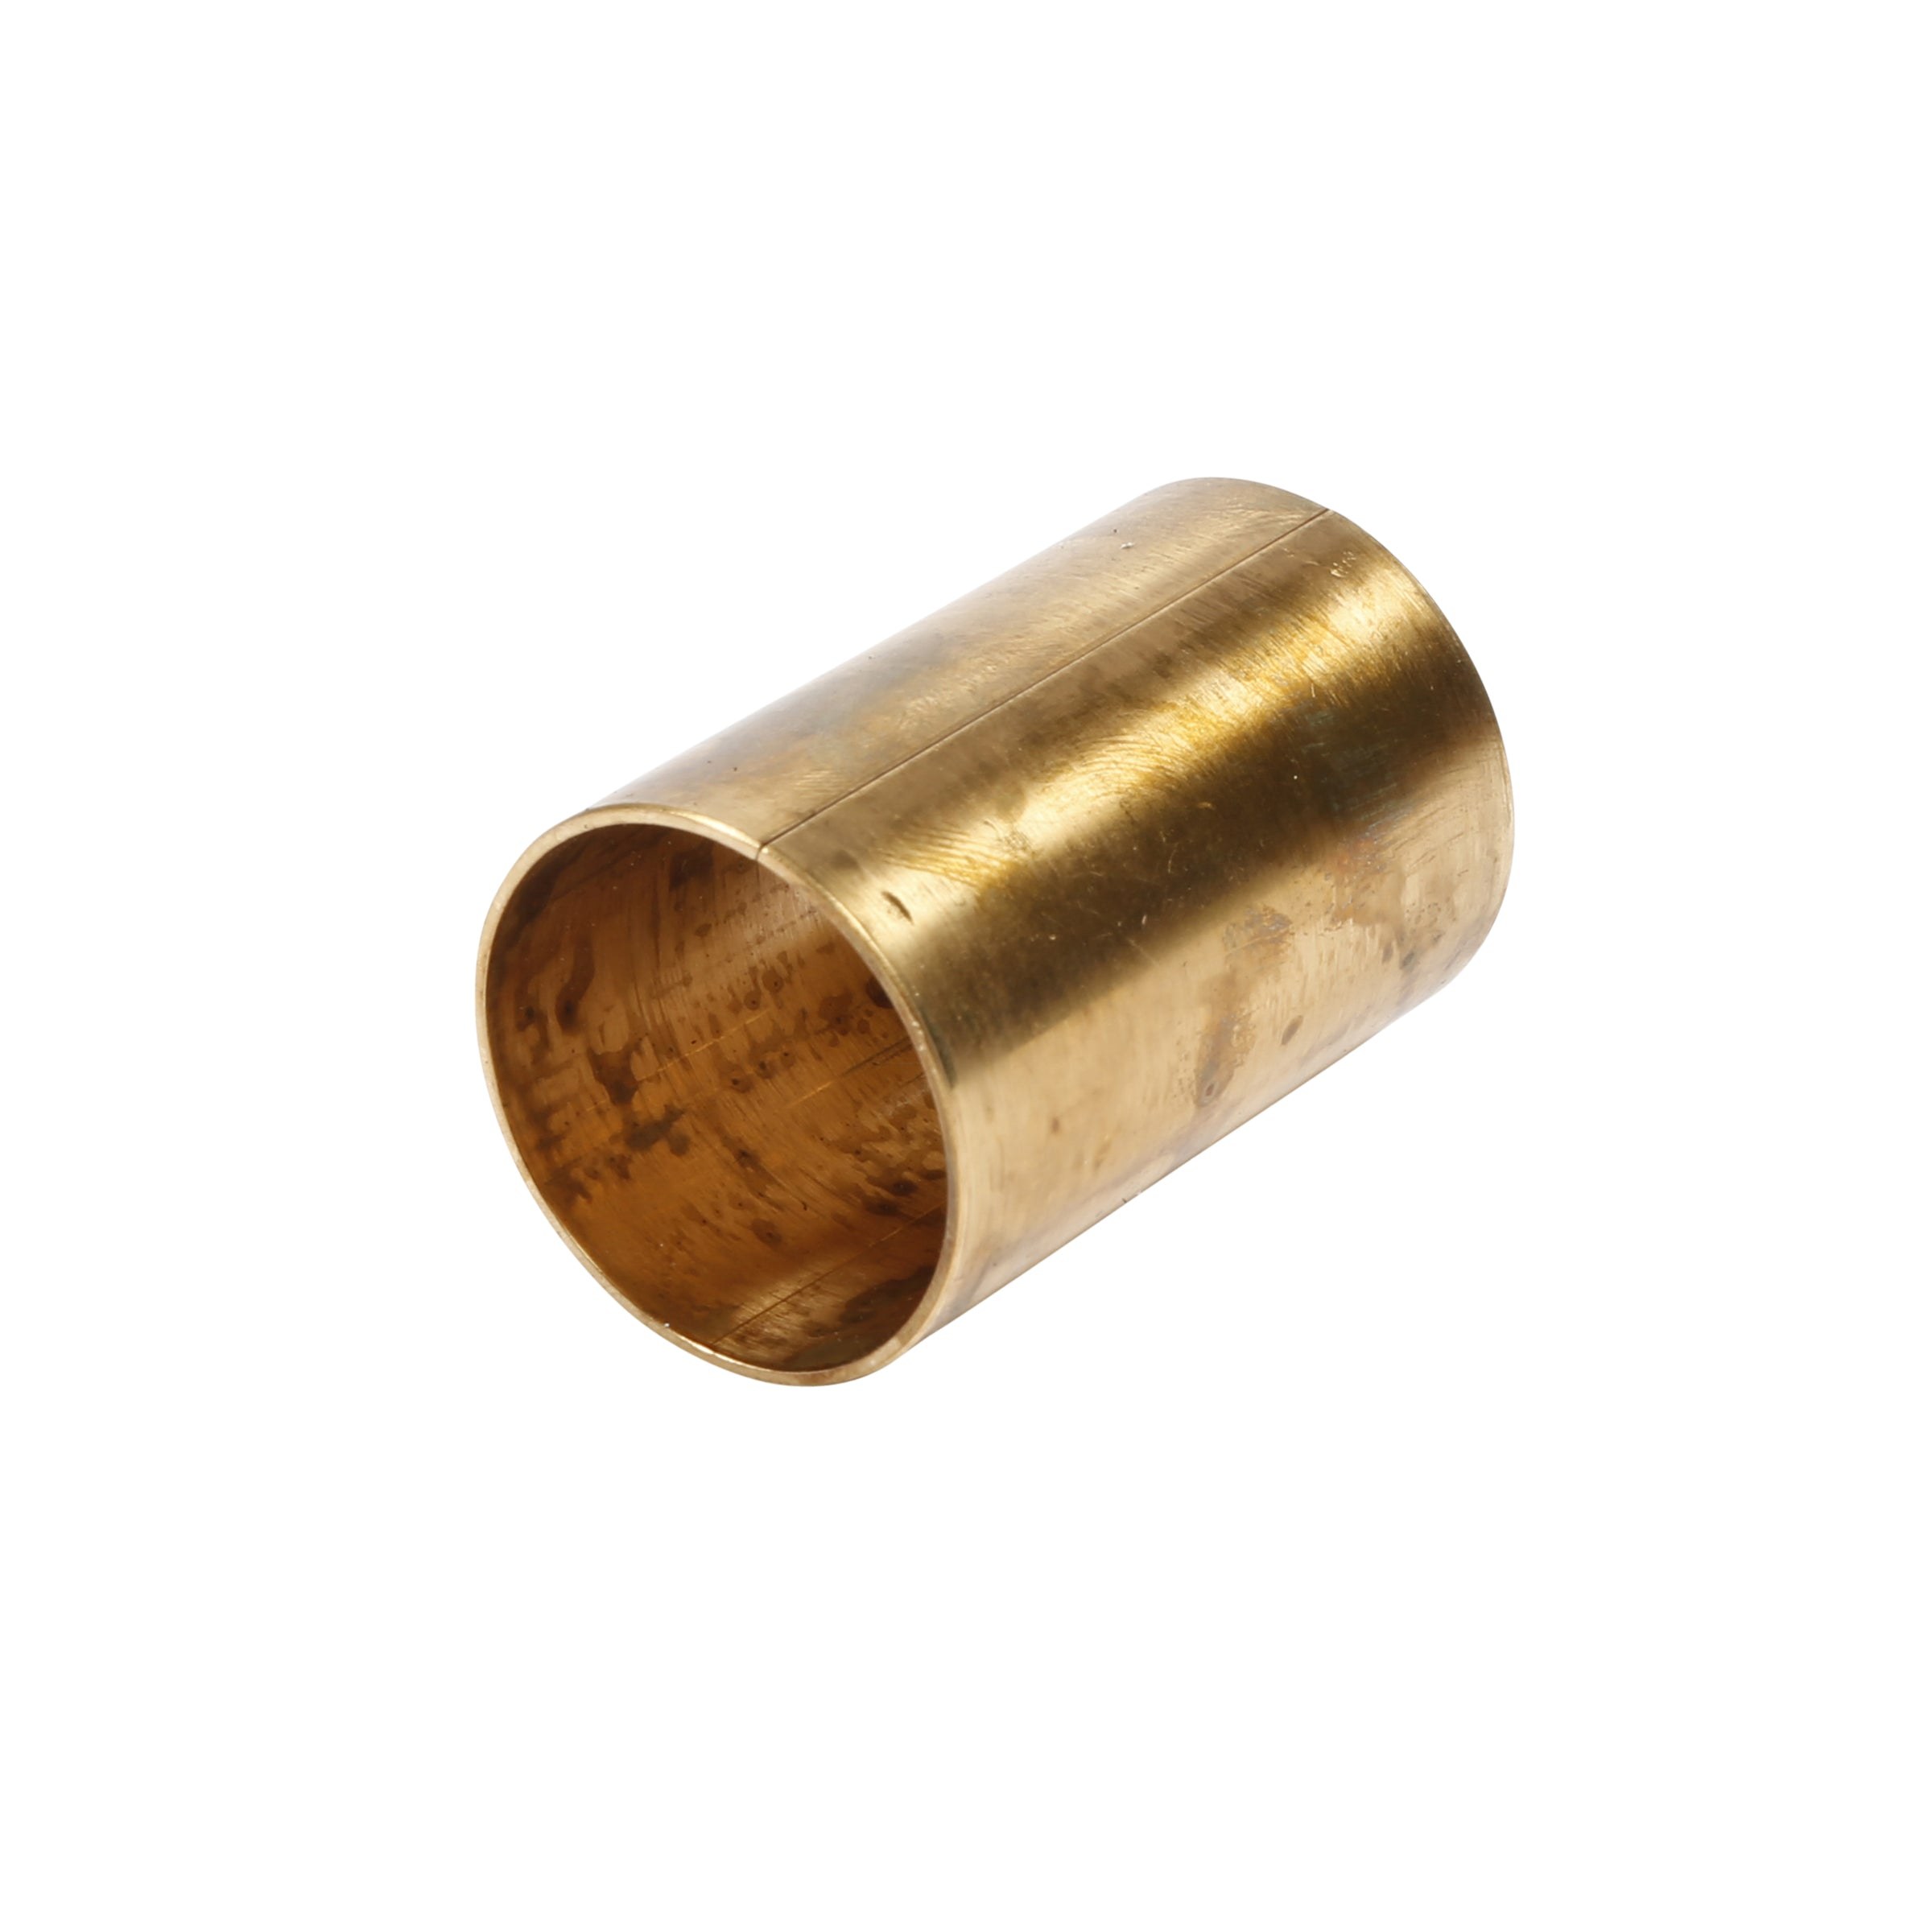 Wrist Pin Bushing • 1928-34 Ford 4 Cylinder